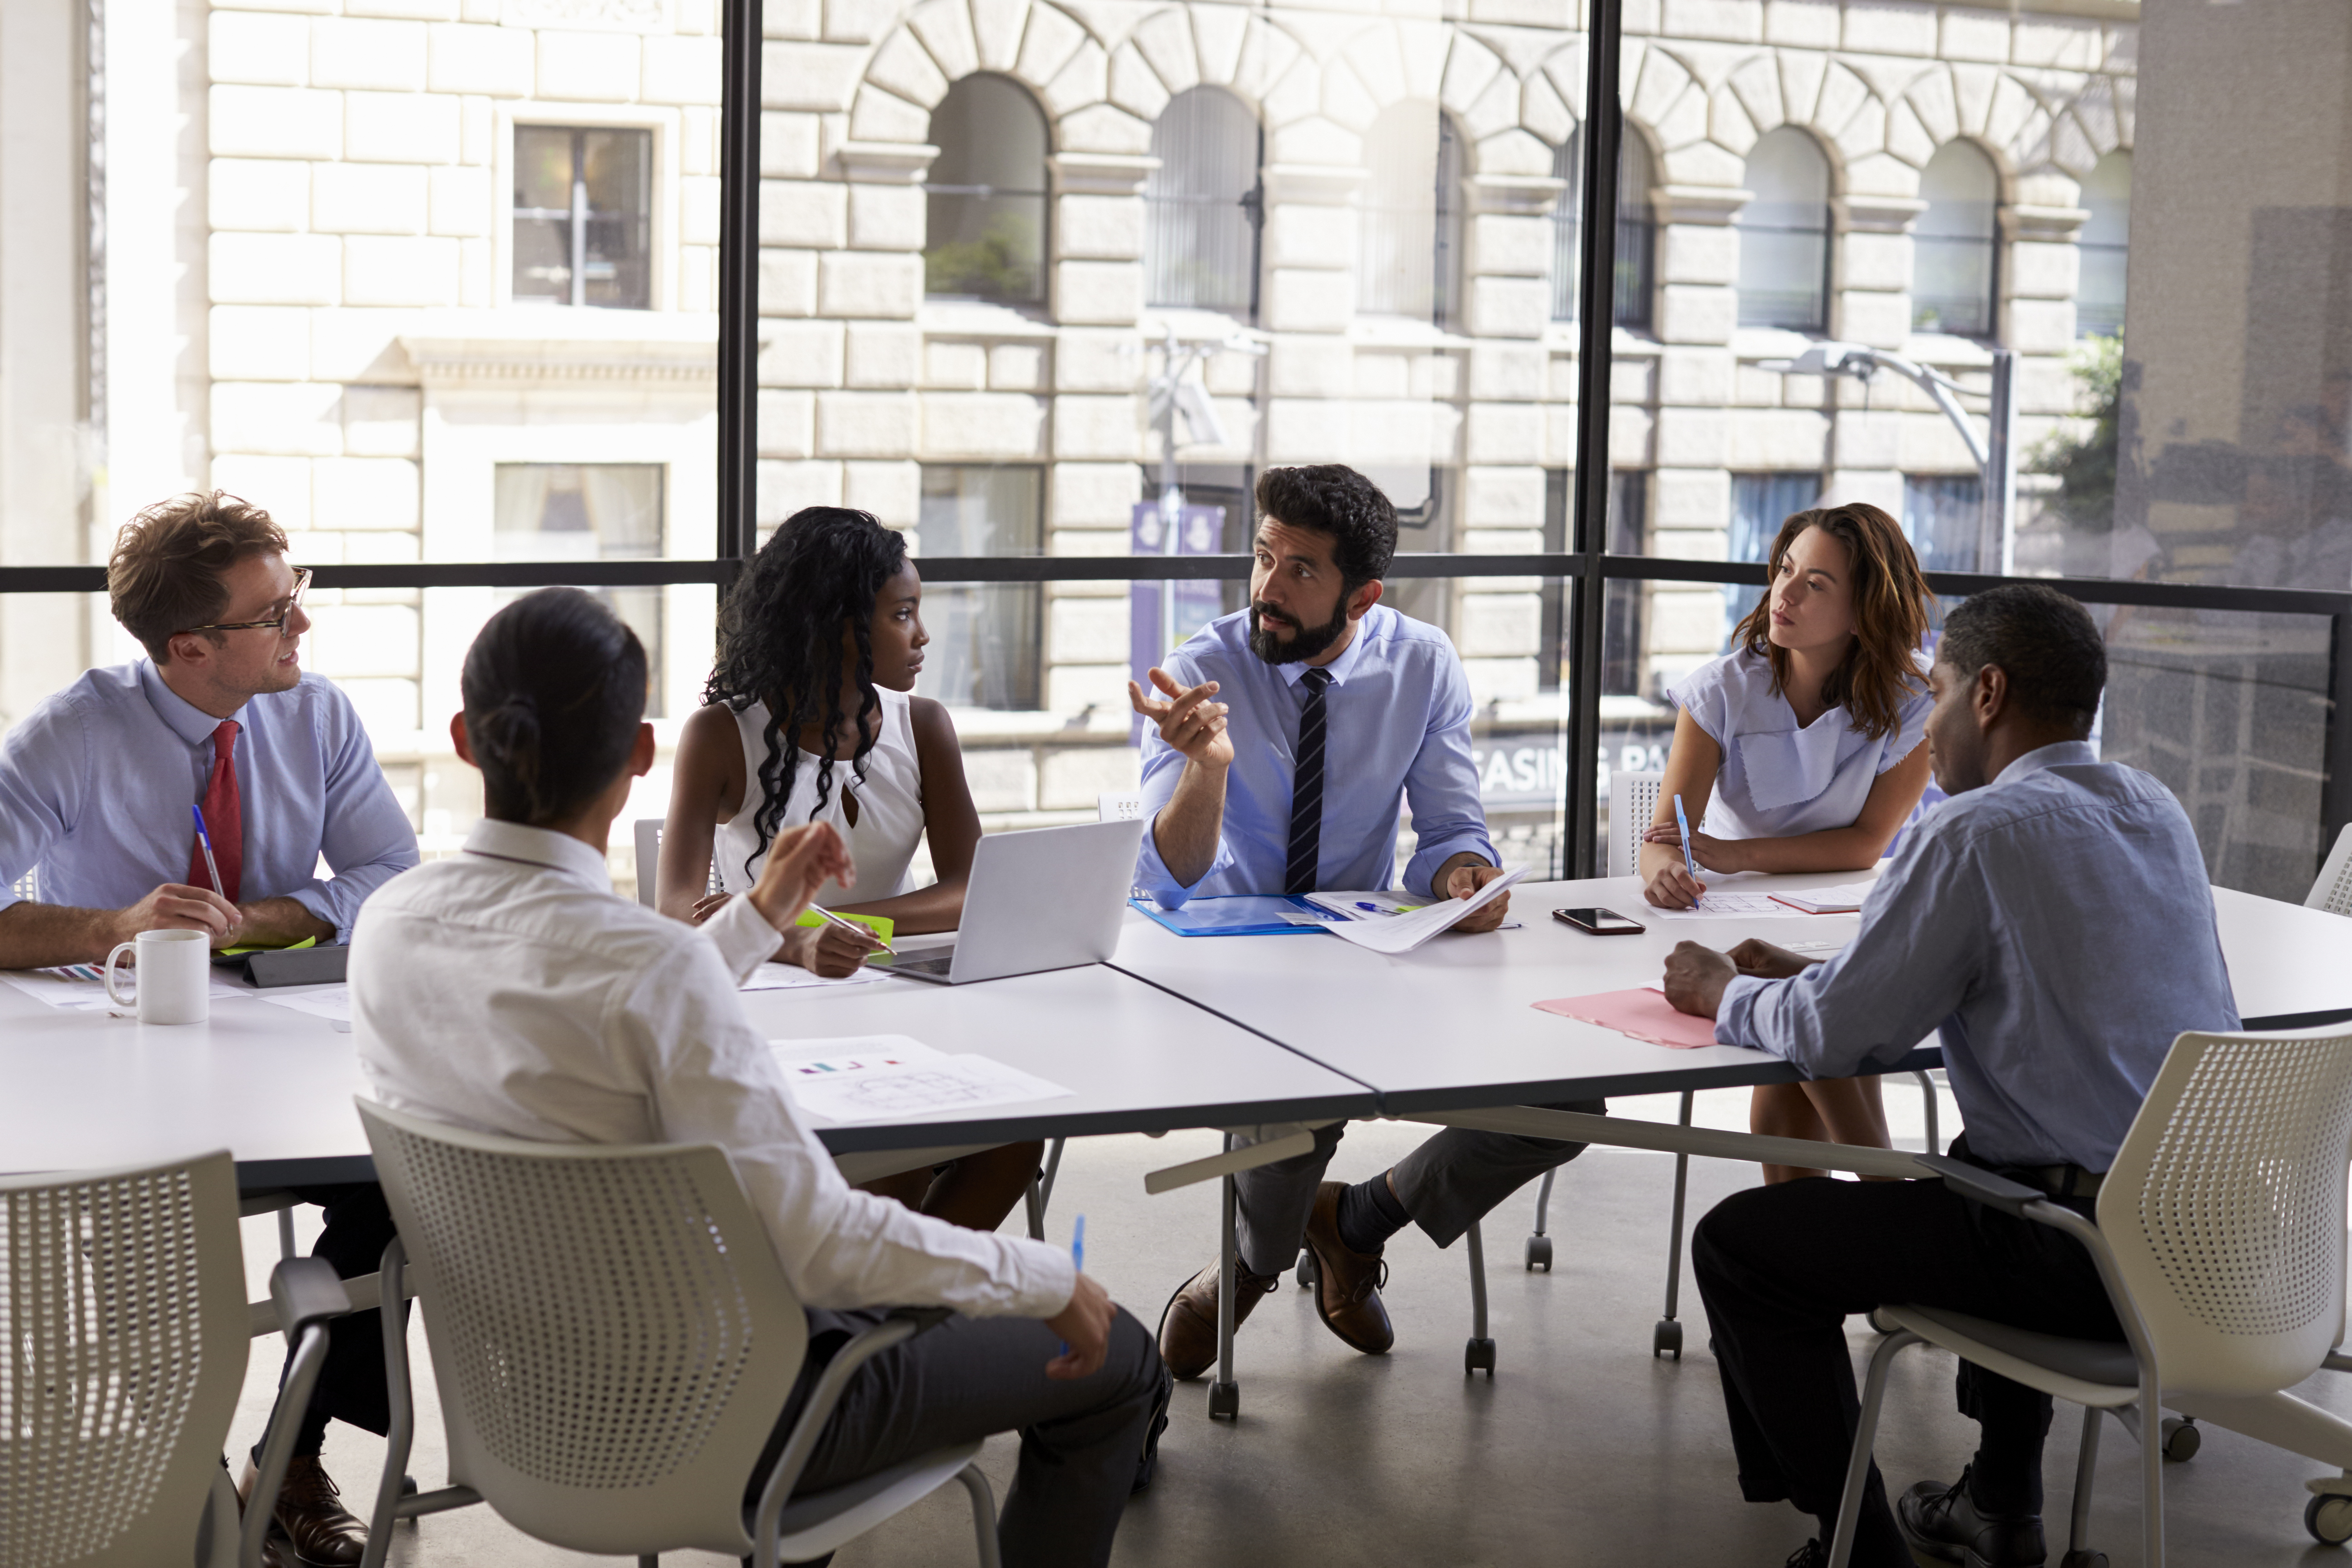 What Are the Causes of Unethical Behavior in the Workplace